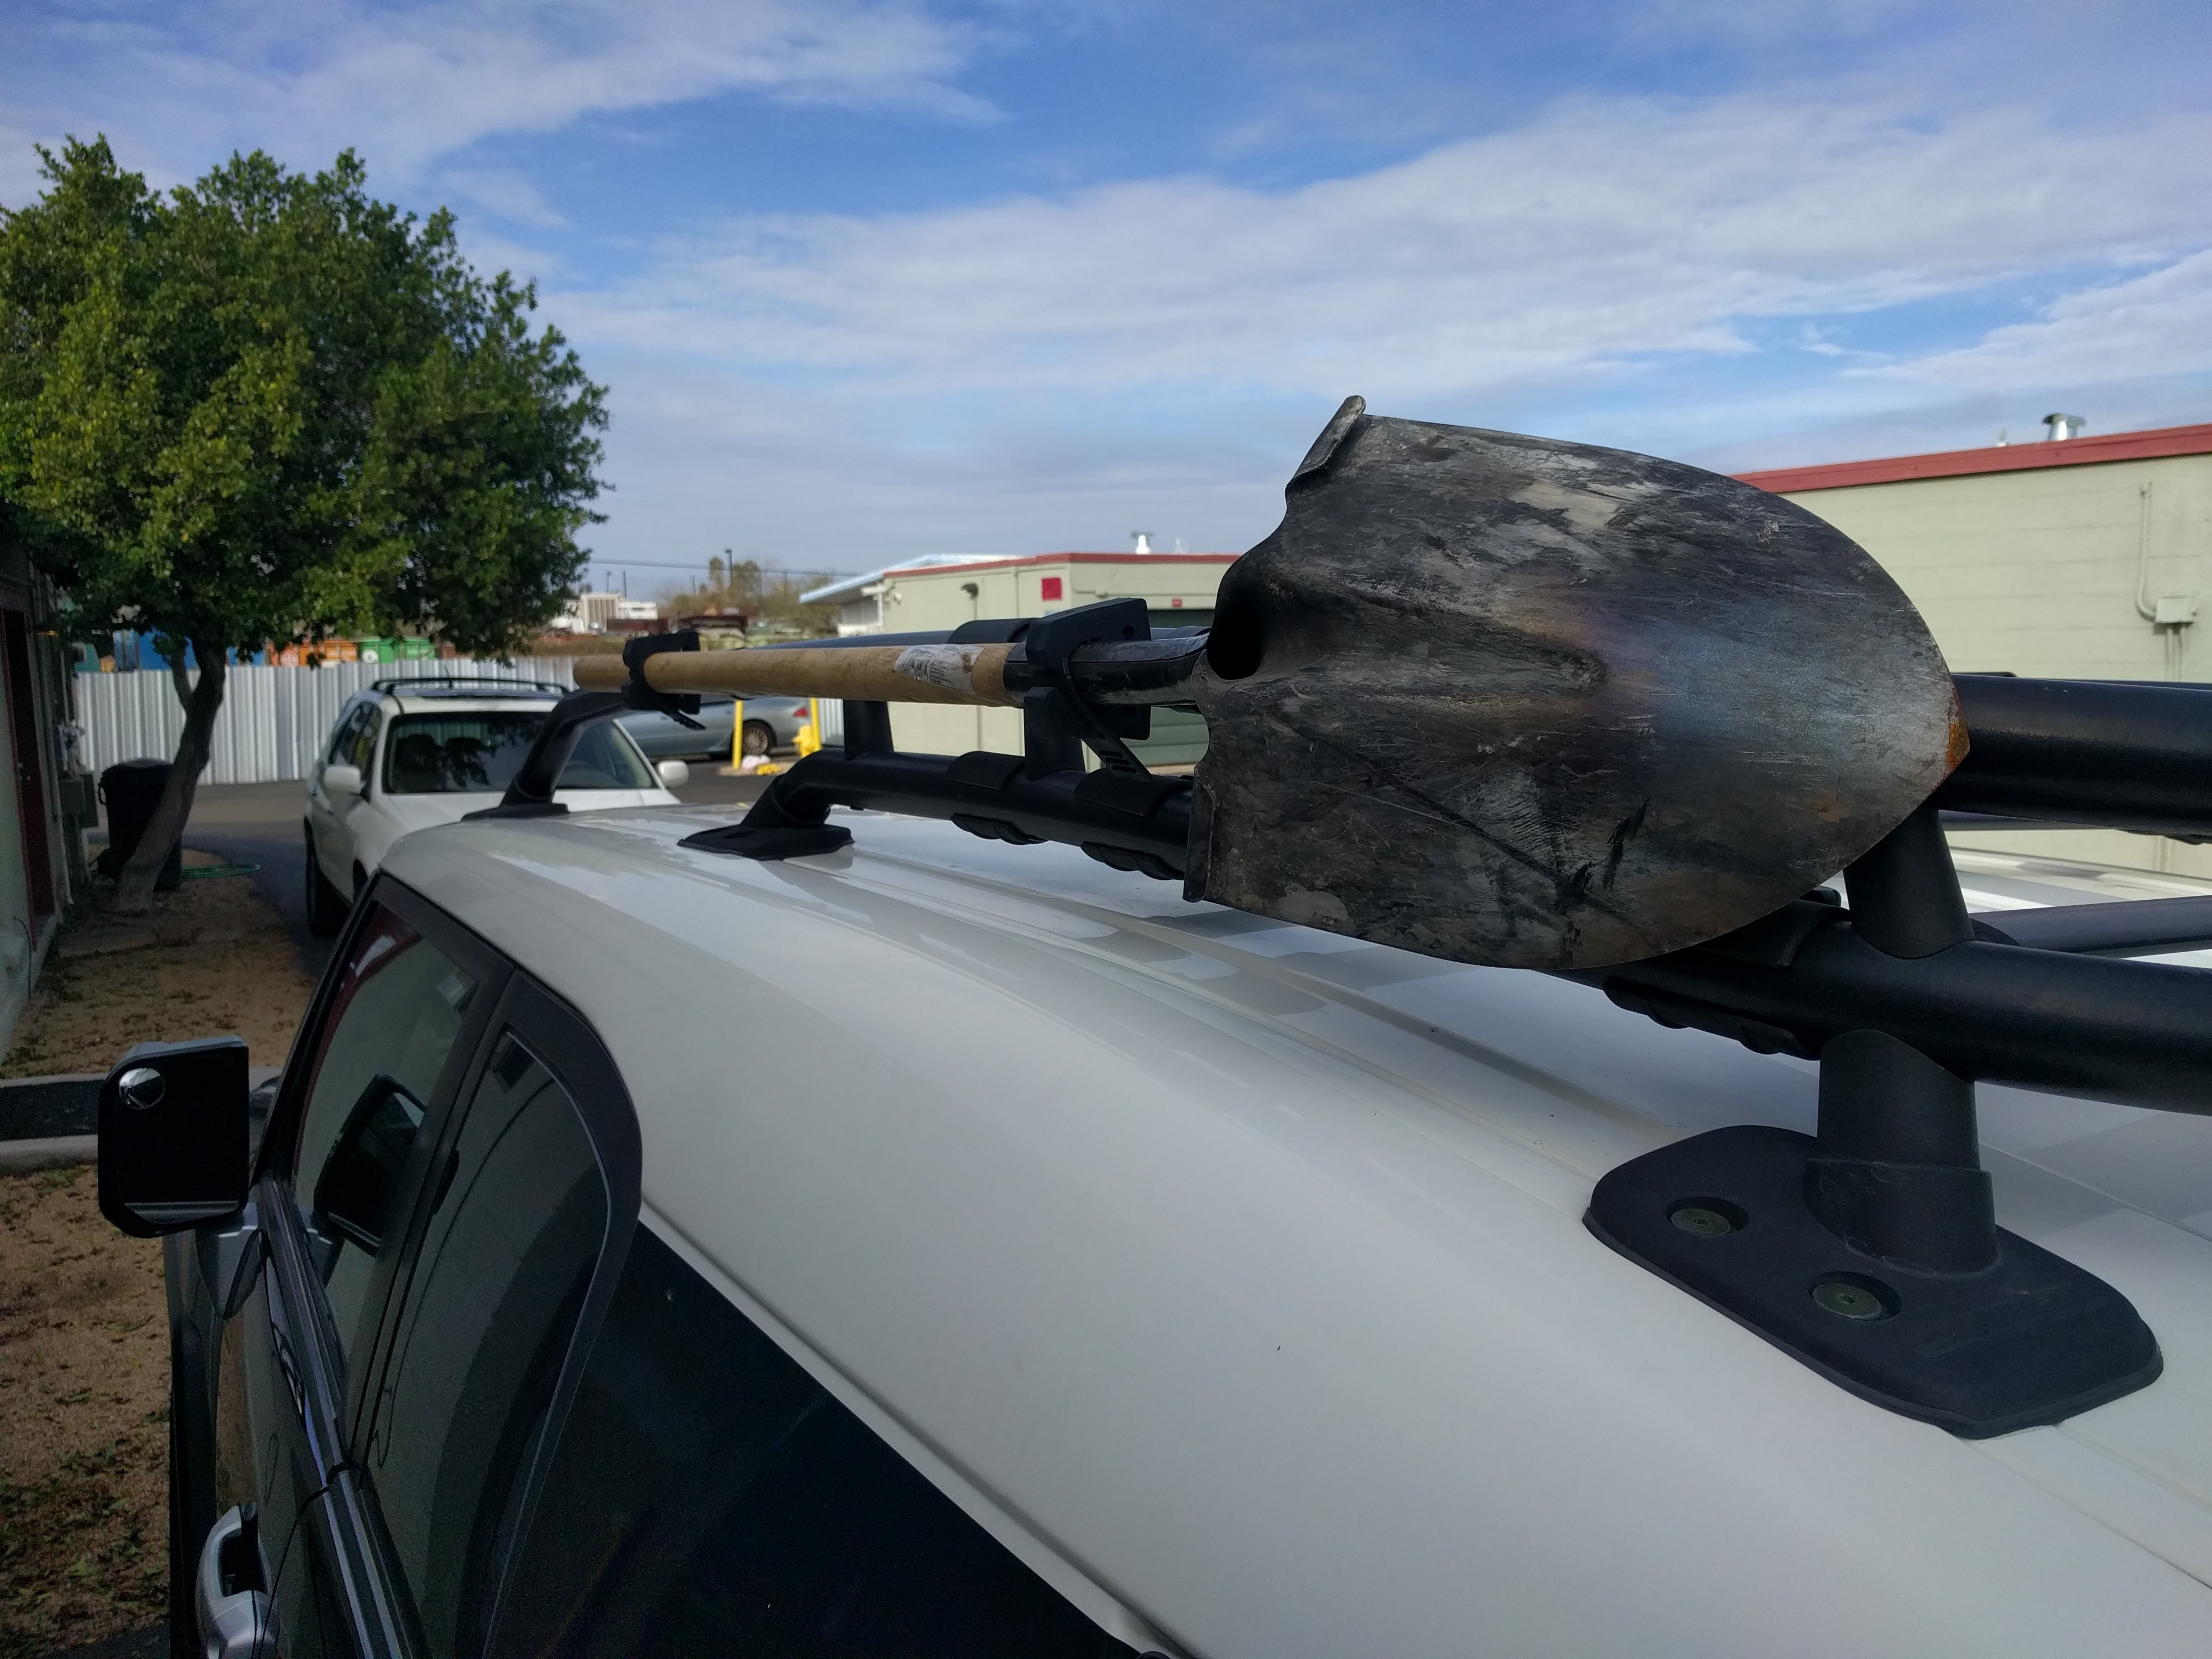 Diy Fj Cruiser Roof Rack Axe Shovel And Tool Mount By J J Kniv Supply Co Overland Expeditions And Journal Medium